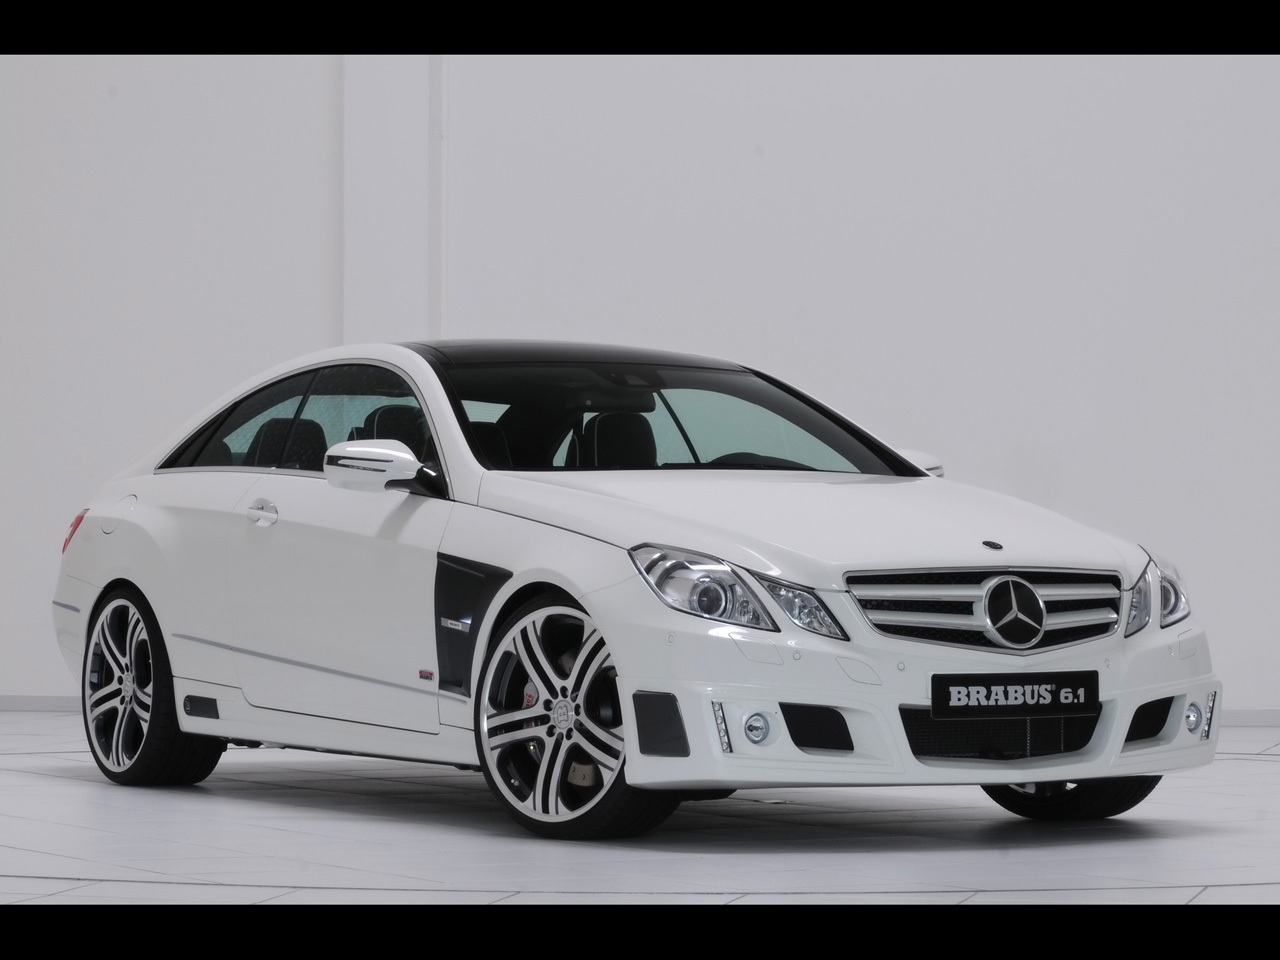 brabus mercedes benz e class coupe front and side 2 mercedesbrabus mercedes benz e class coupe front and side 2